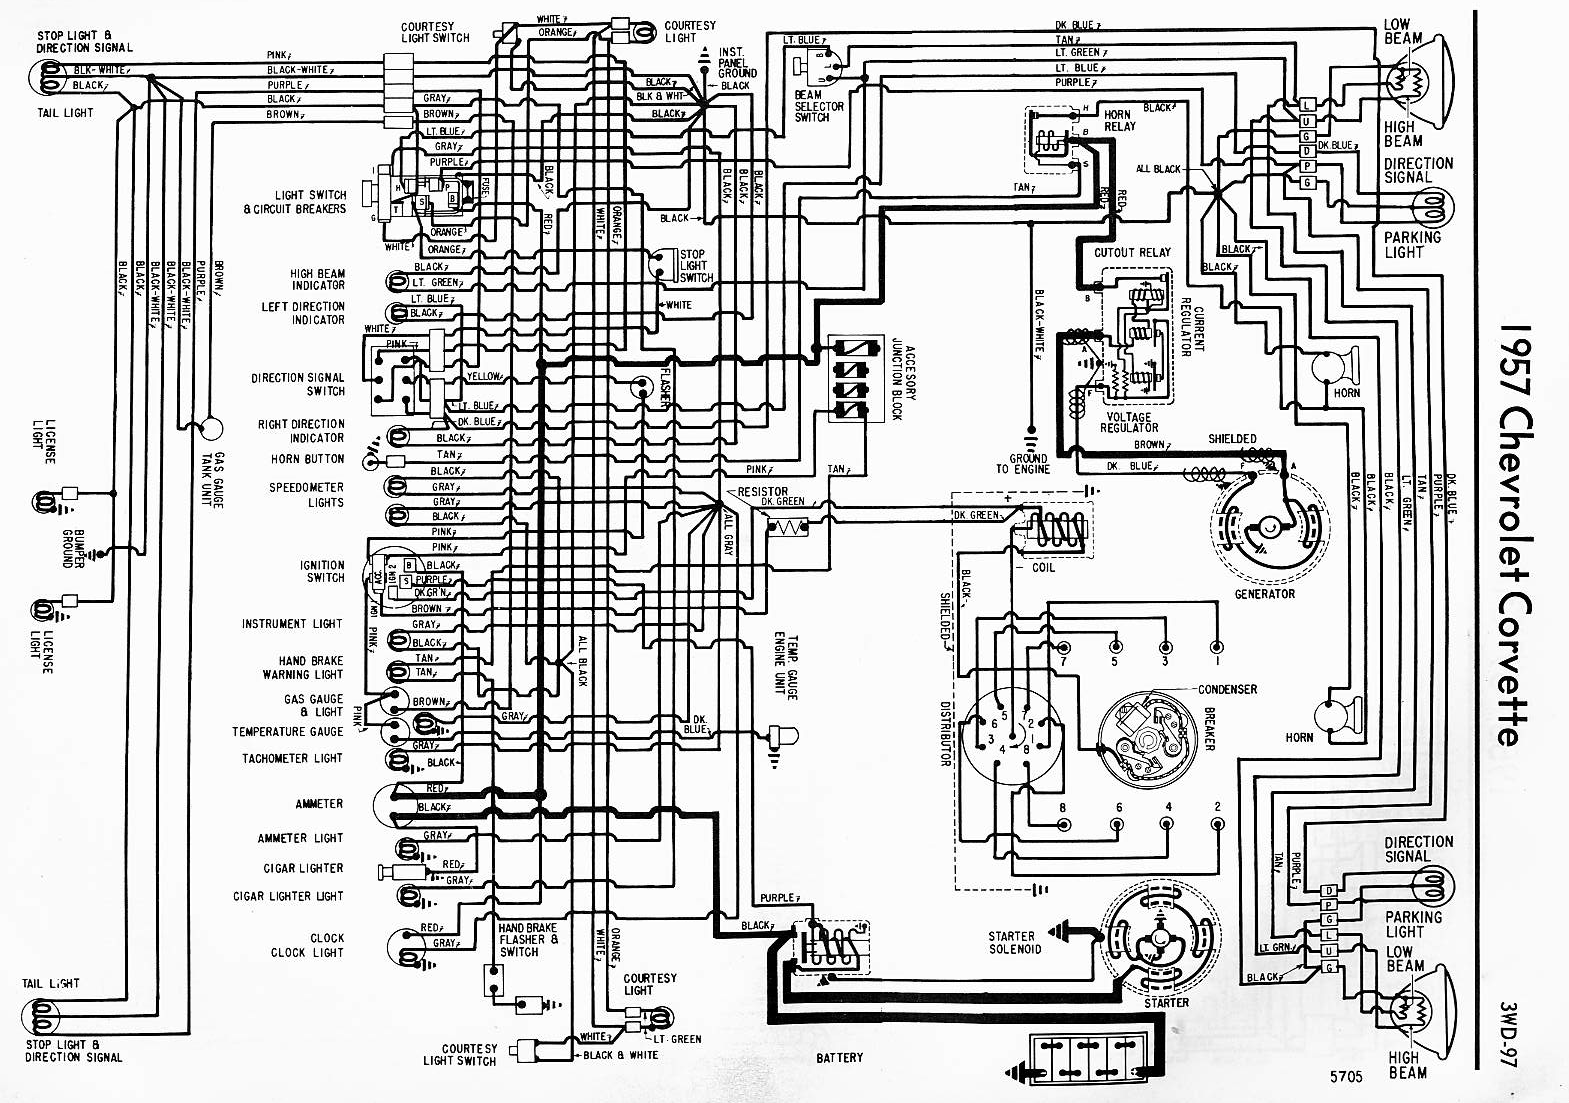 57 corvettte tracer schematic best one 1957 corvette wiring diagram willcox corvette, inc corvette wiring schematic at soozxer.org